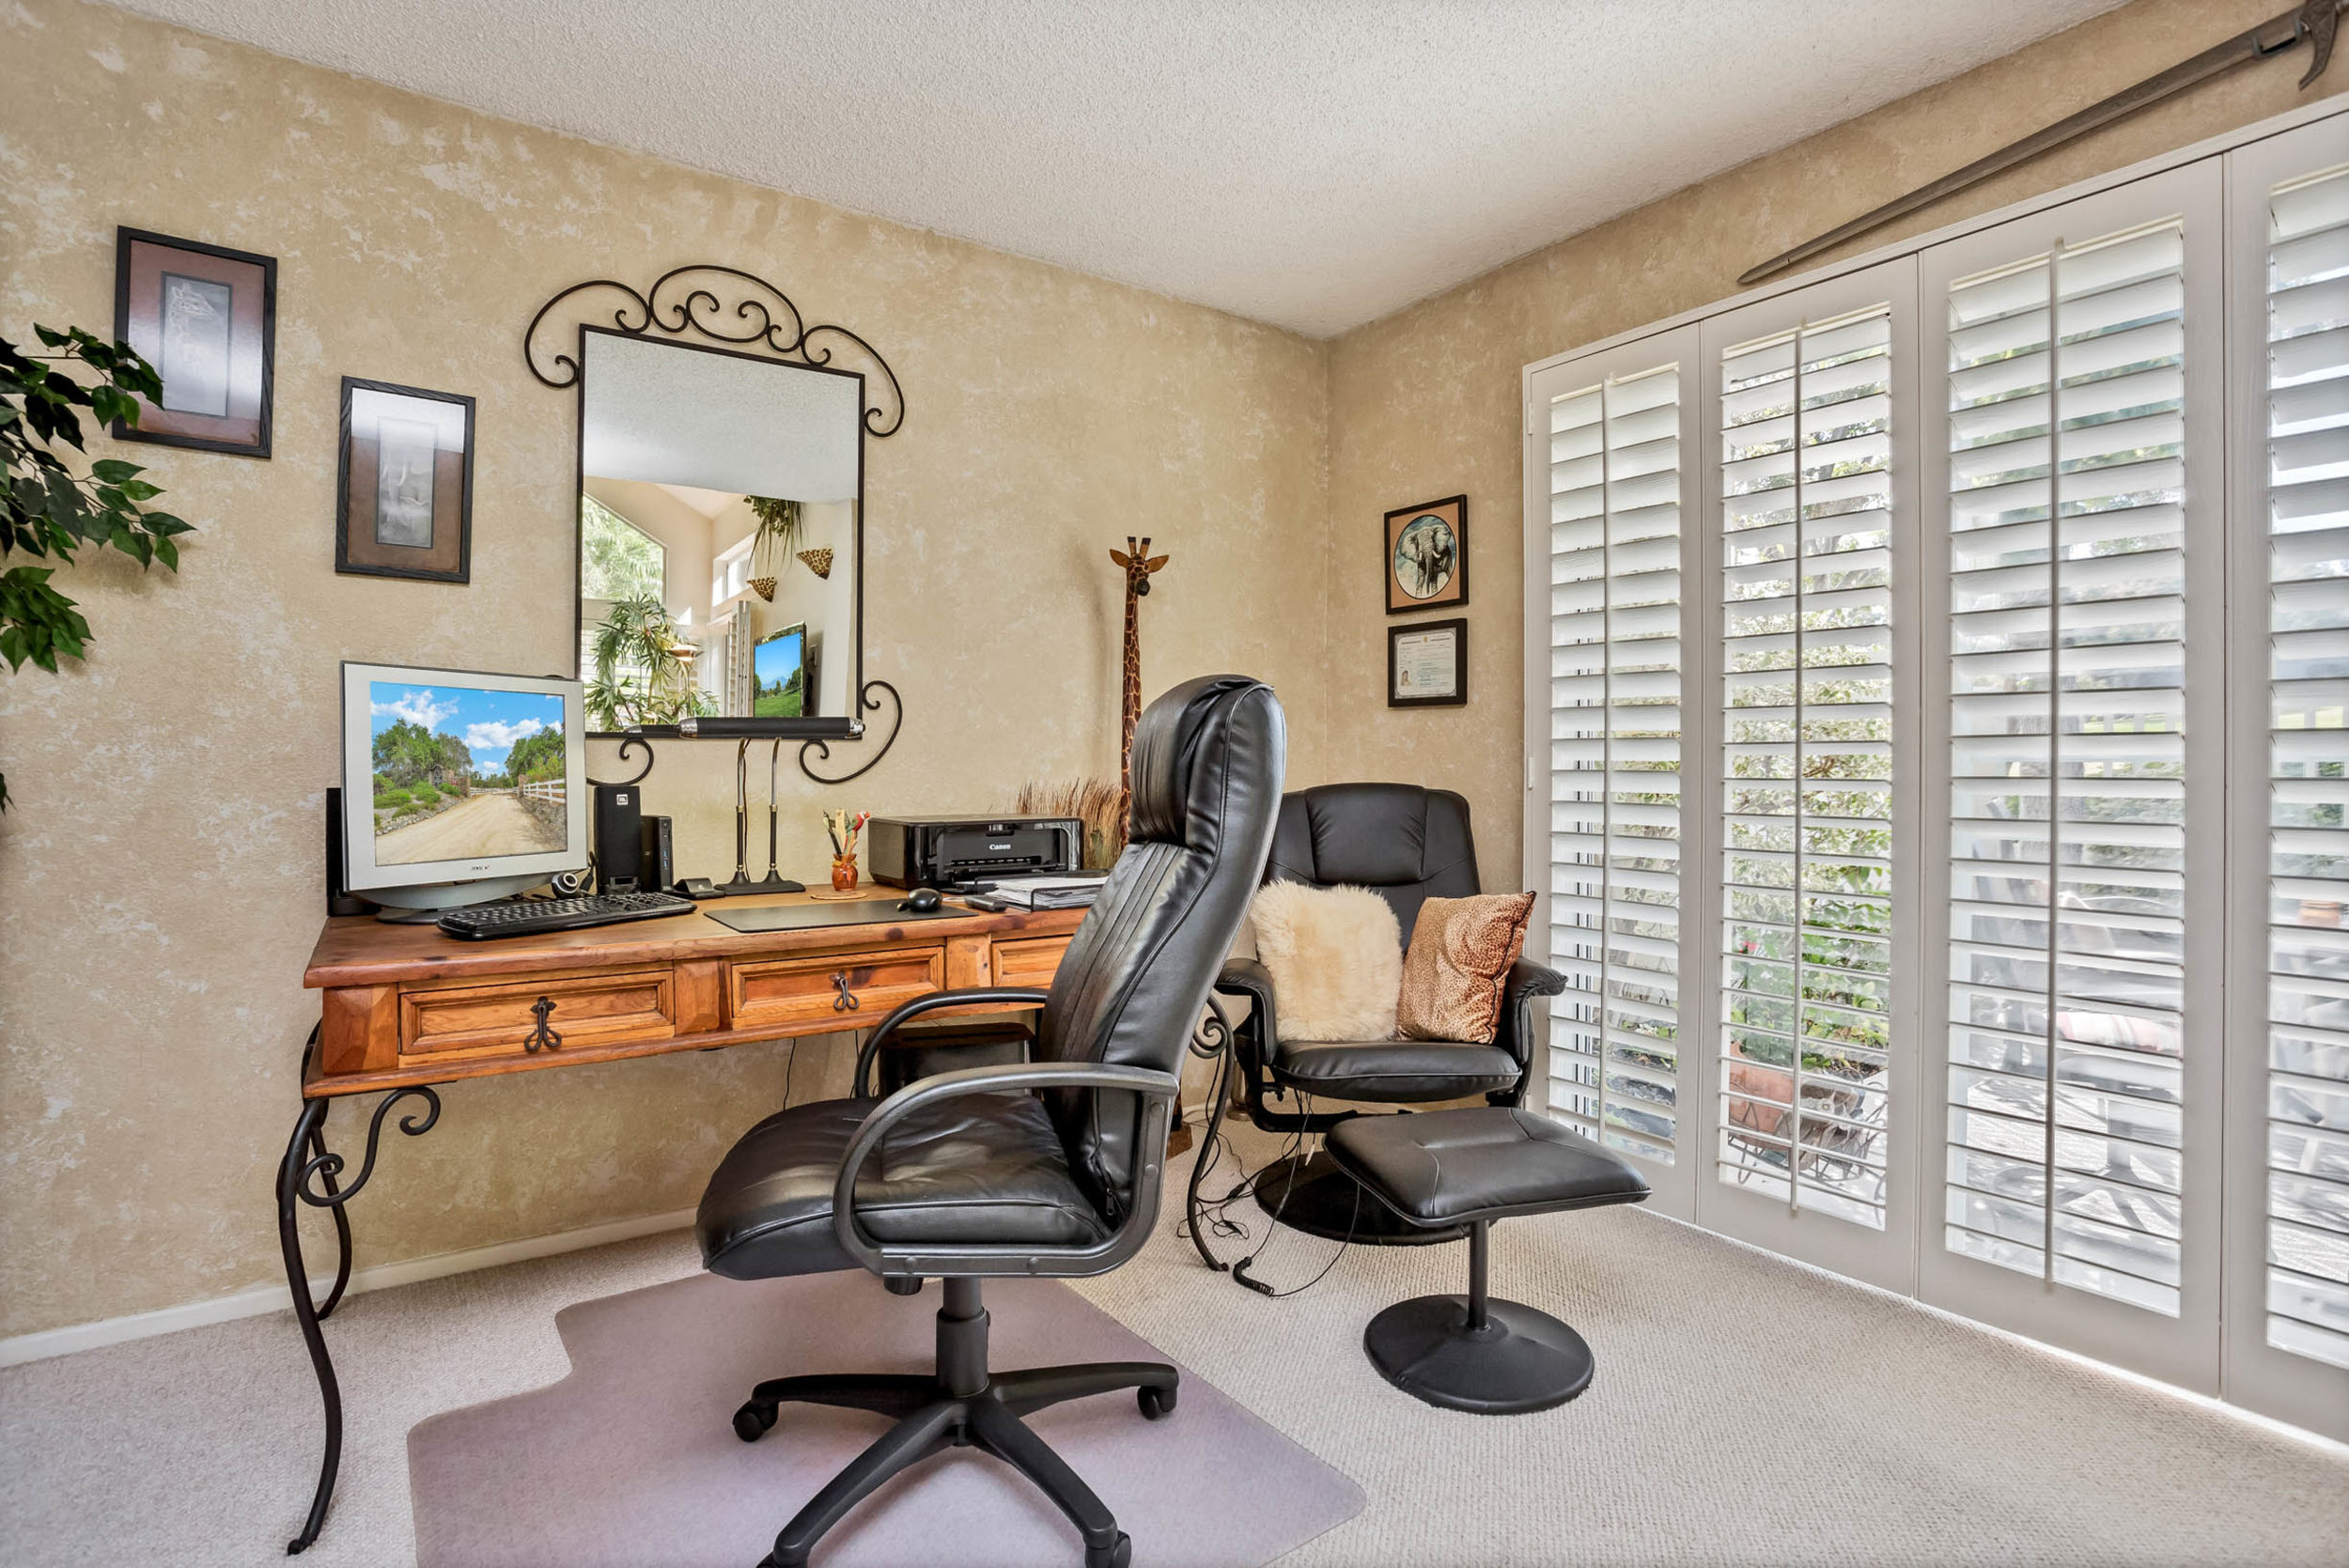 009 Office 18 Rainwood Aliso Viejo Orange County For Sale Lease The Malibu Life Team Luxury Real Estate.jpg